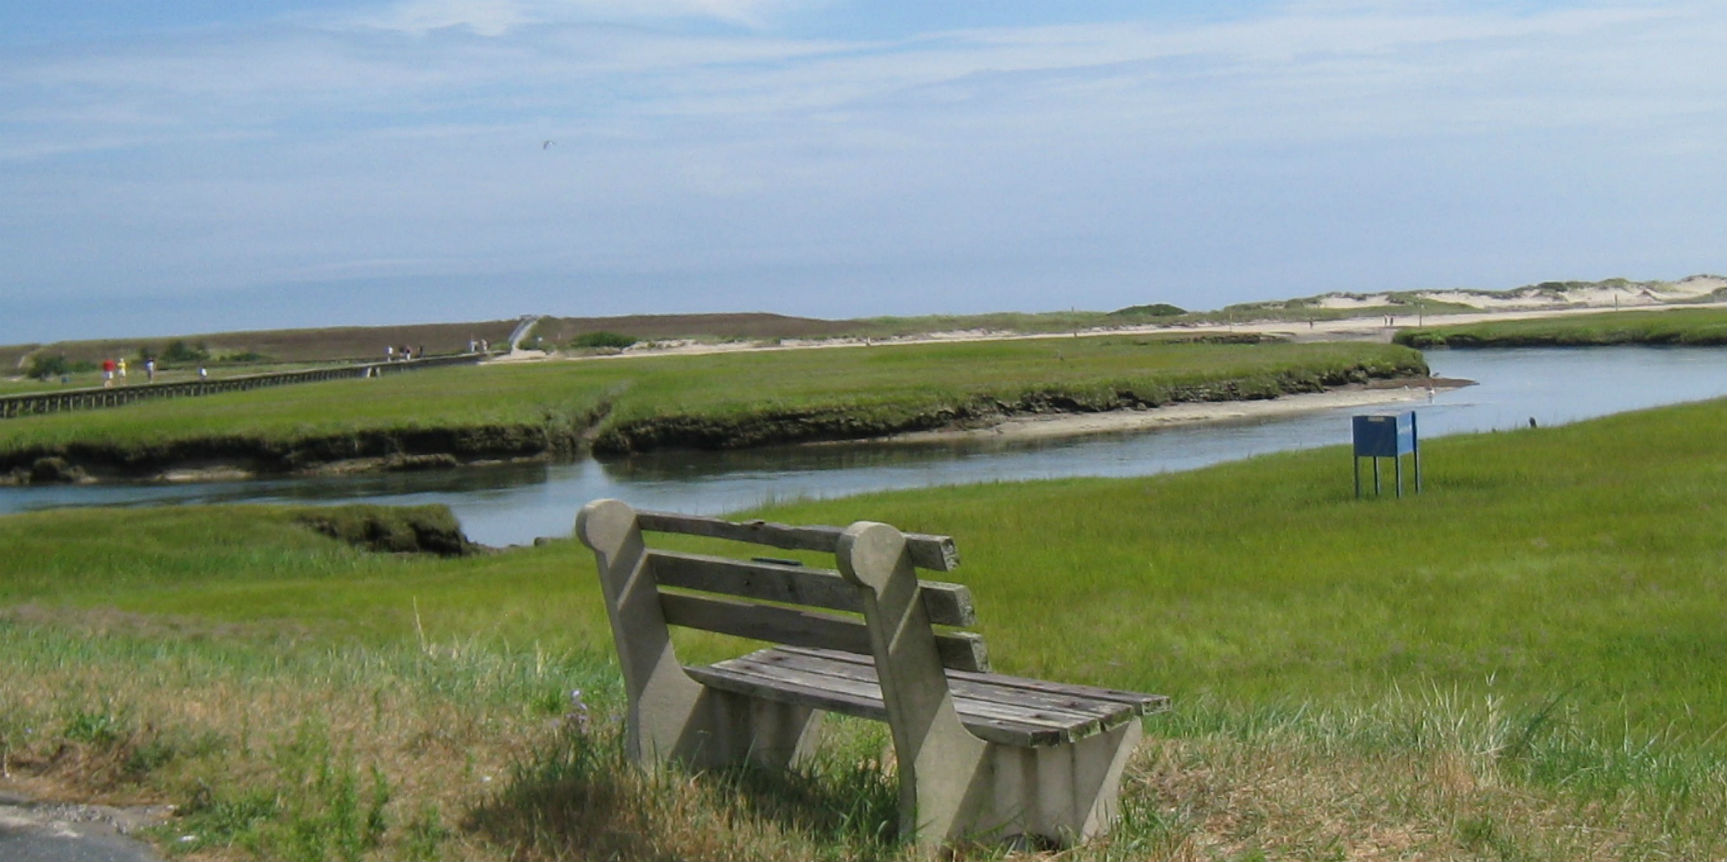 Looking down Mill Creek at Sandwich Boardwalk, Cape Cod. Photo credit: H. Nijkamp